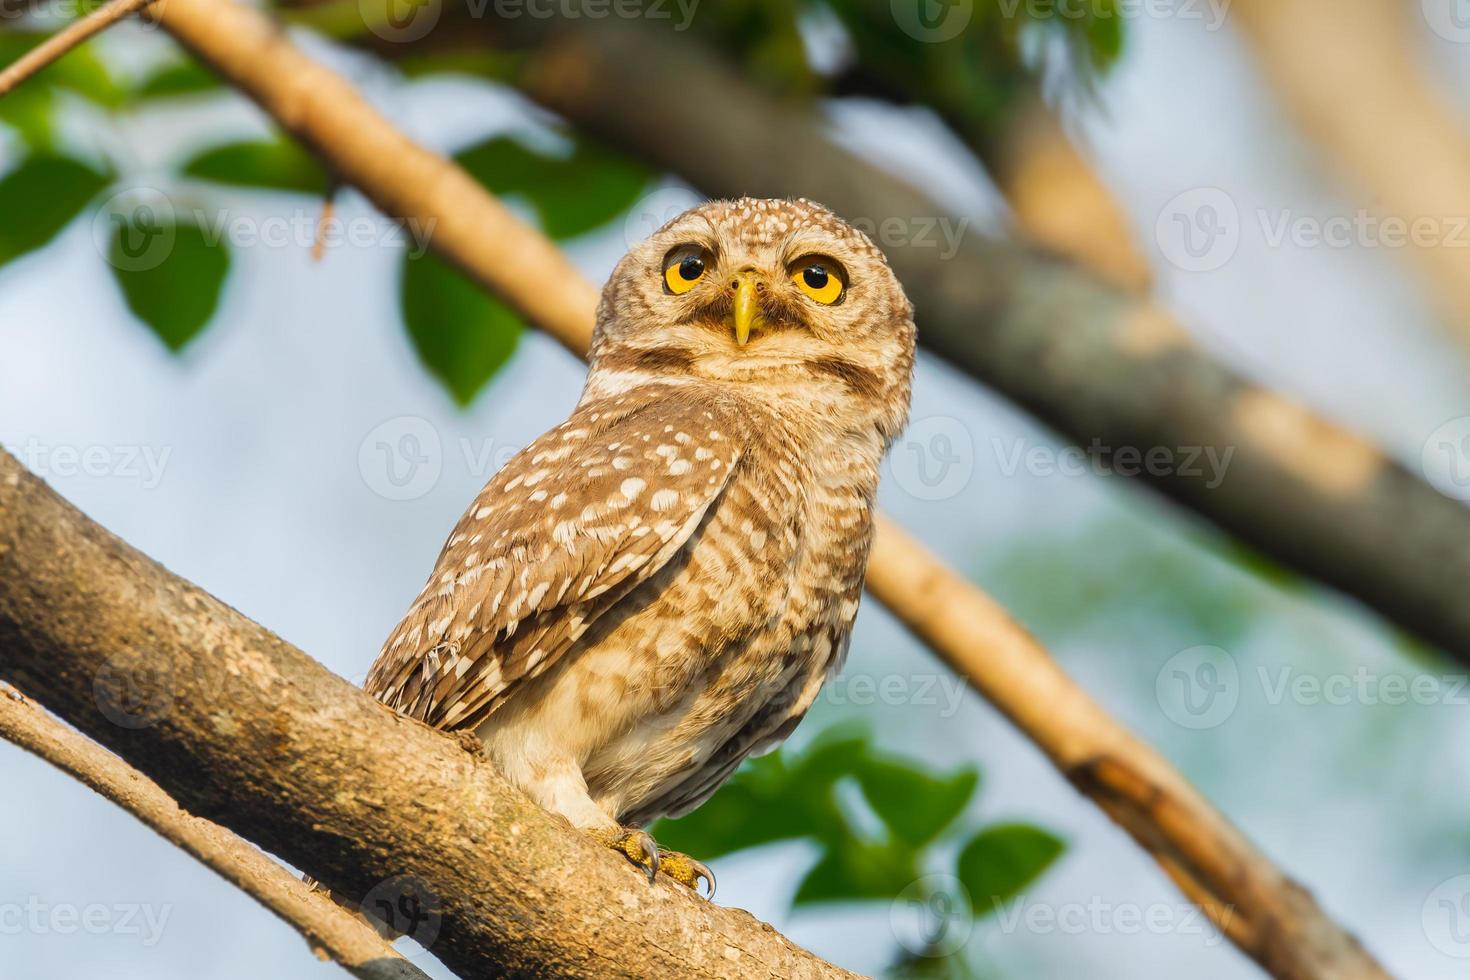 Spotted owlet photo